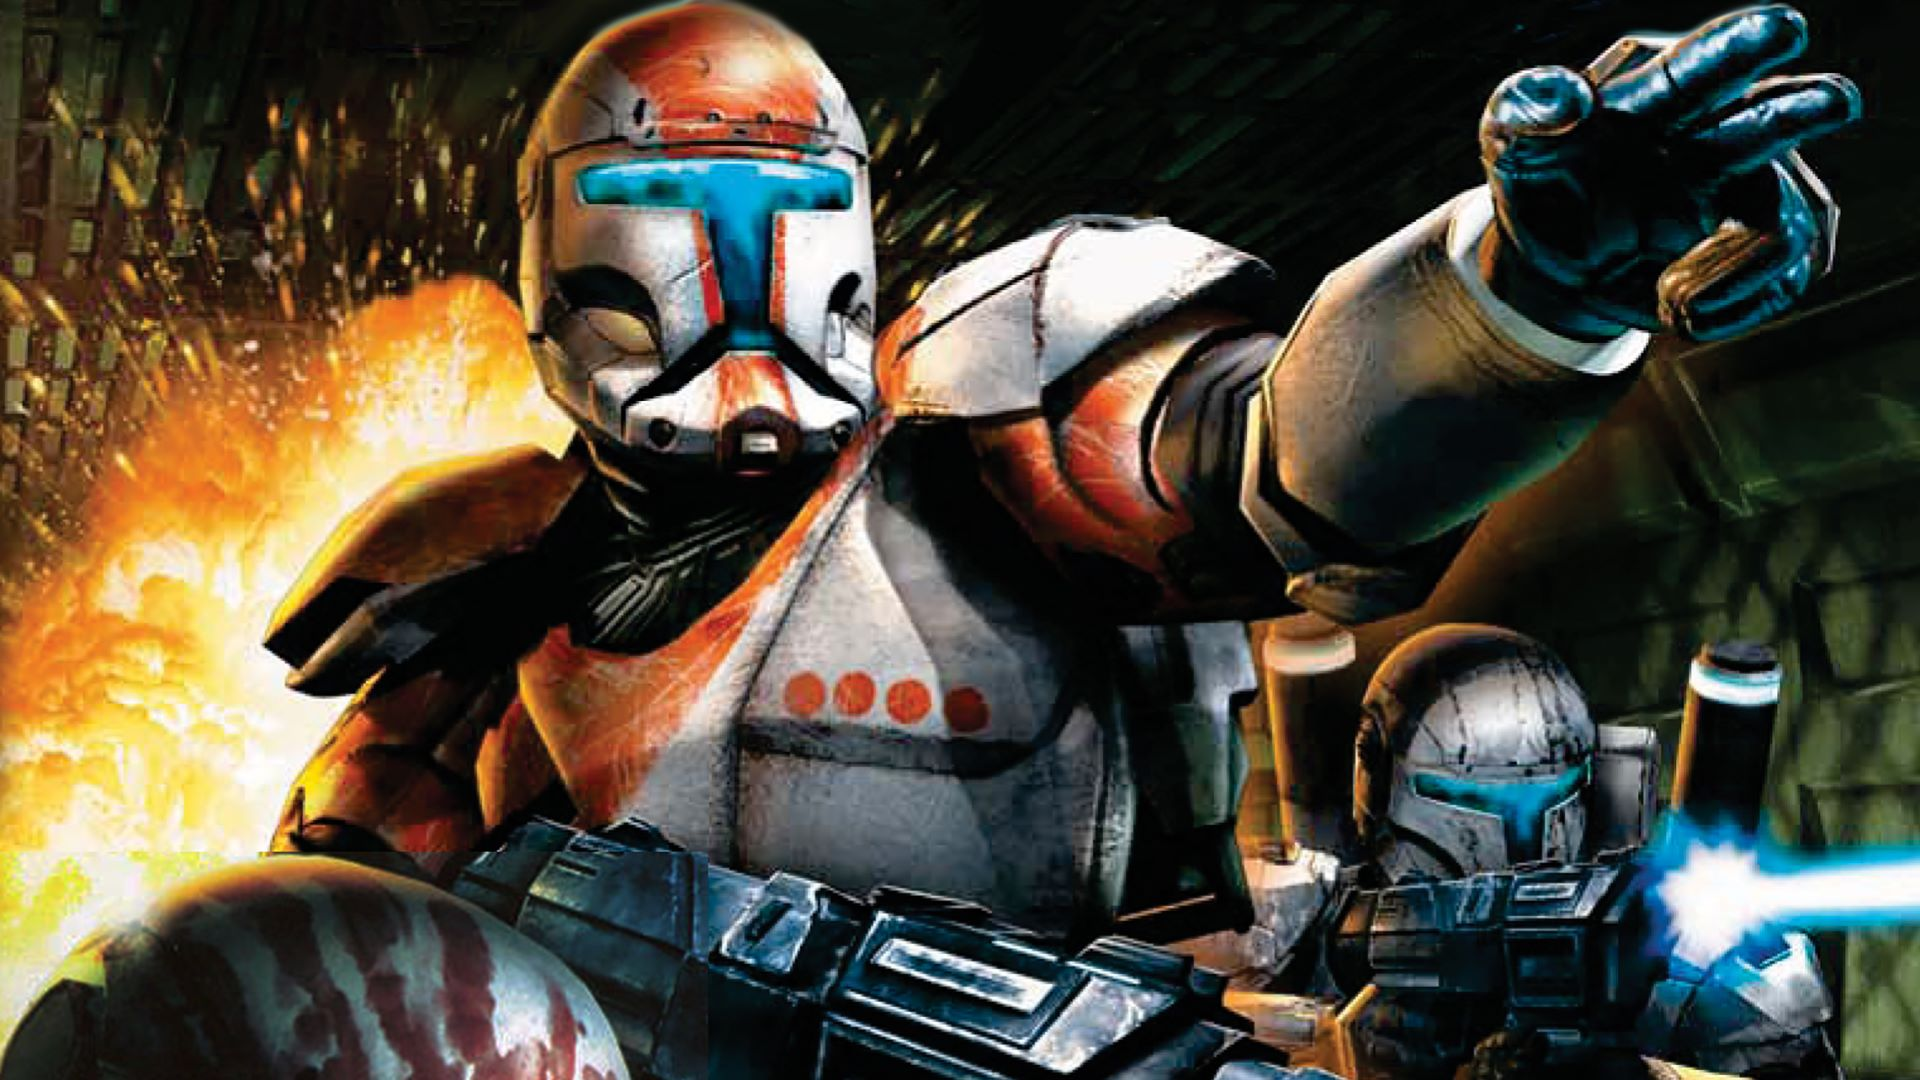 Star Wars Republic Commando's simplicity is what we need in 2019